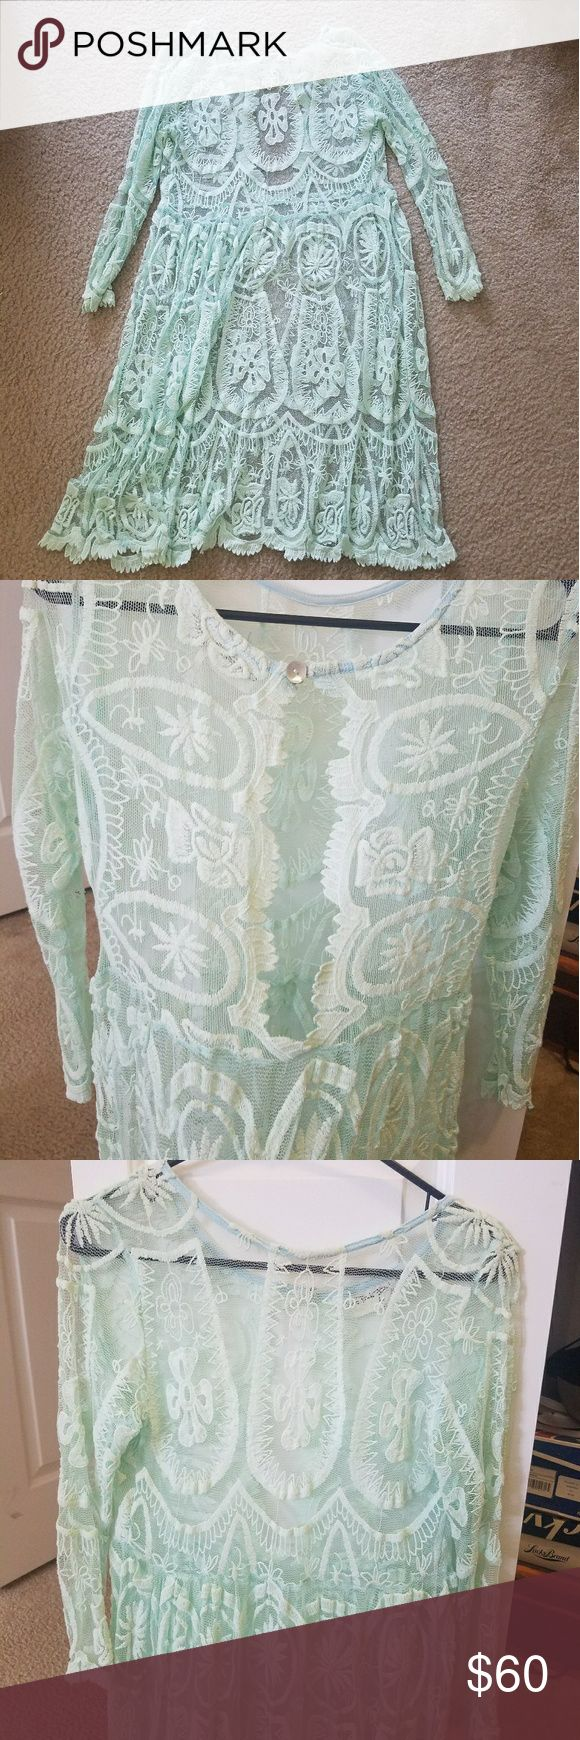 Free people lace dress 3 quarter length sleeved full lace dress. Free People Dresses High Low